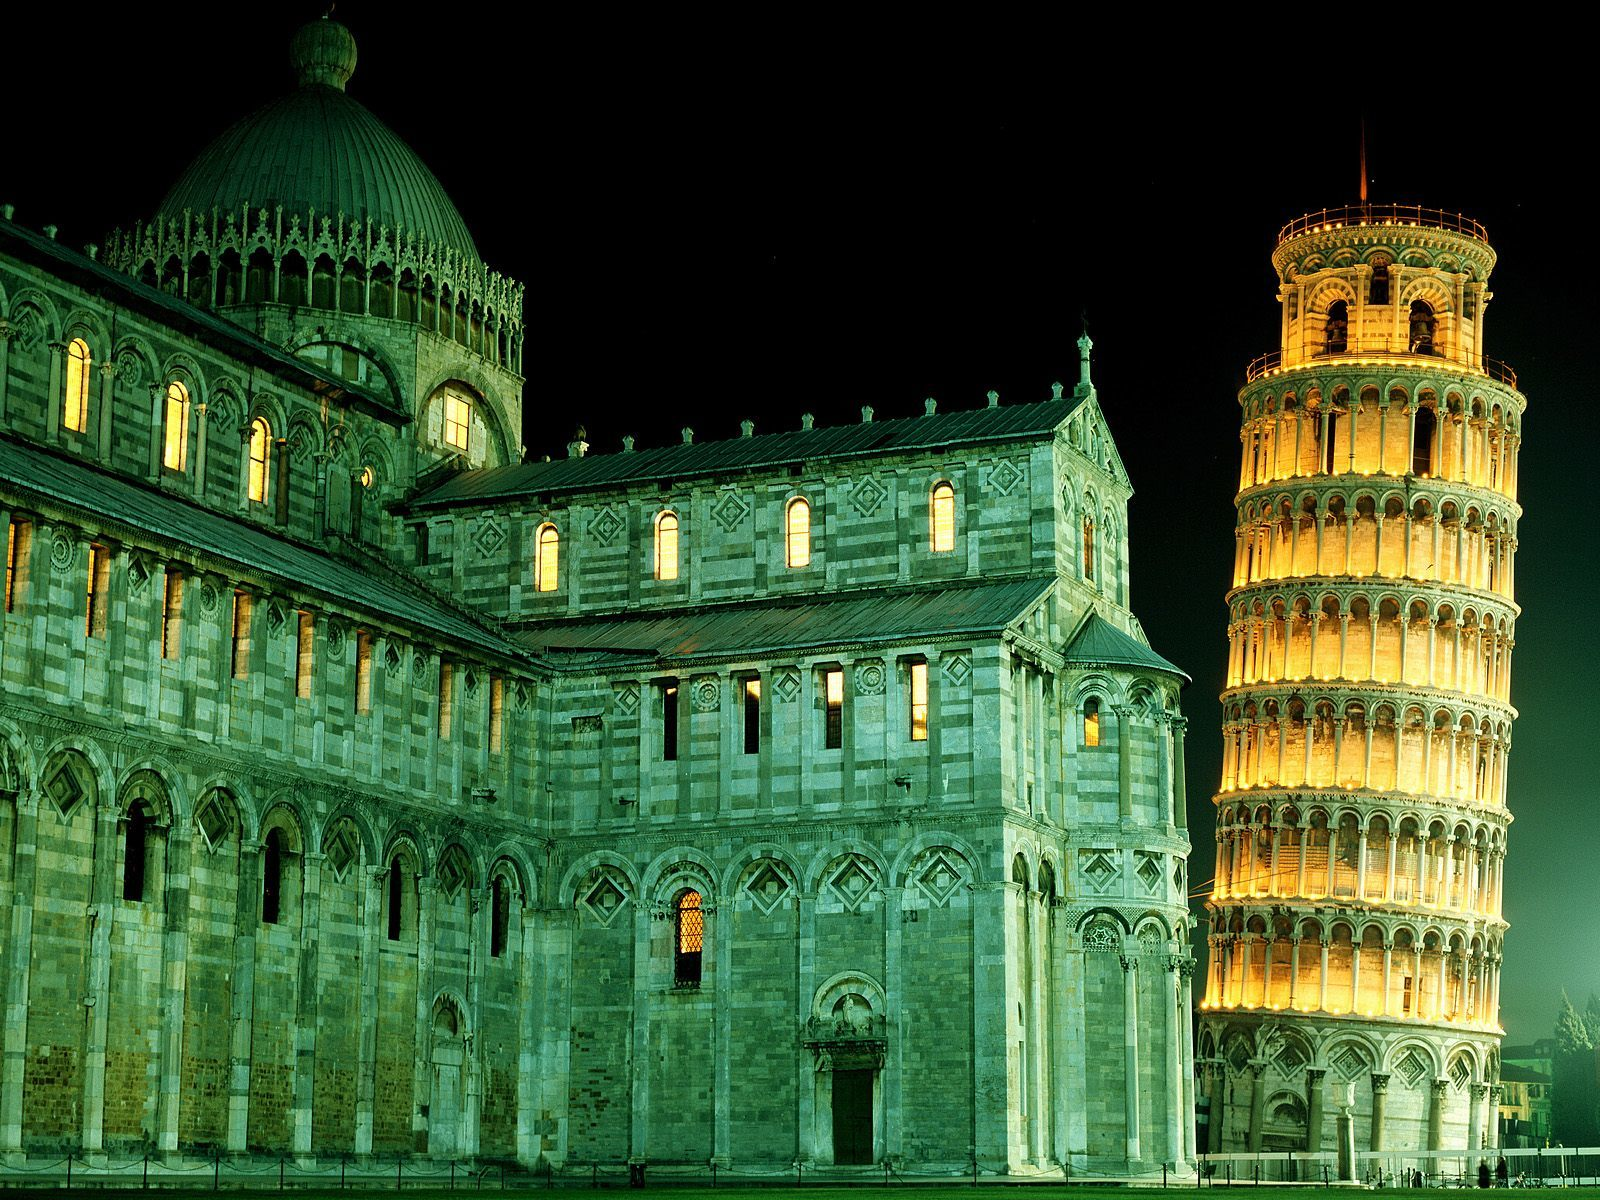 leaning tower architecture Pisa HD Wallpaper